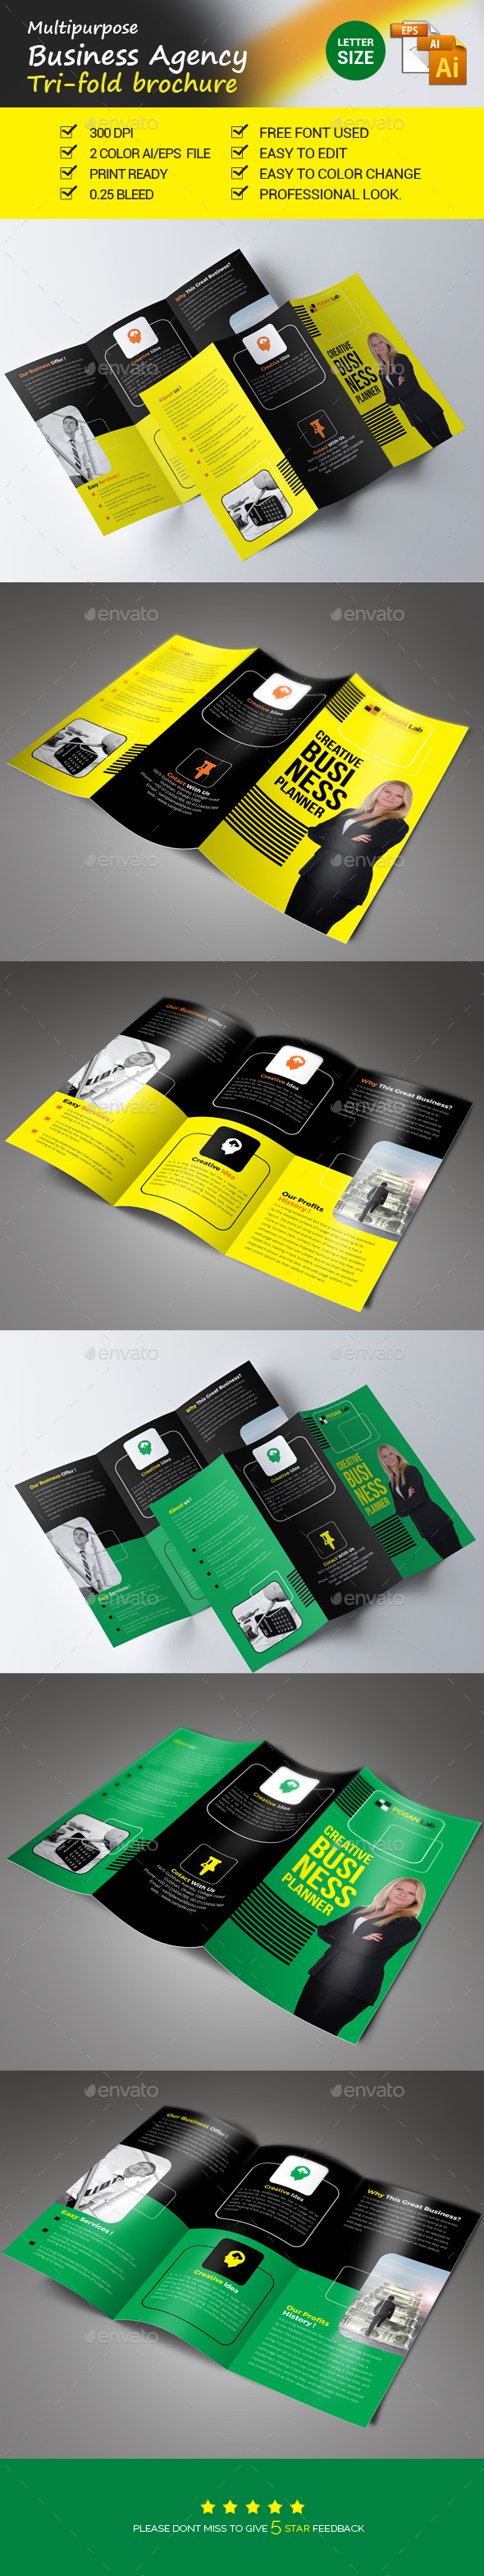 Business Agency Trifold Brochure - Brochures Print Templates